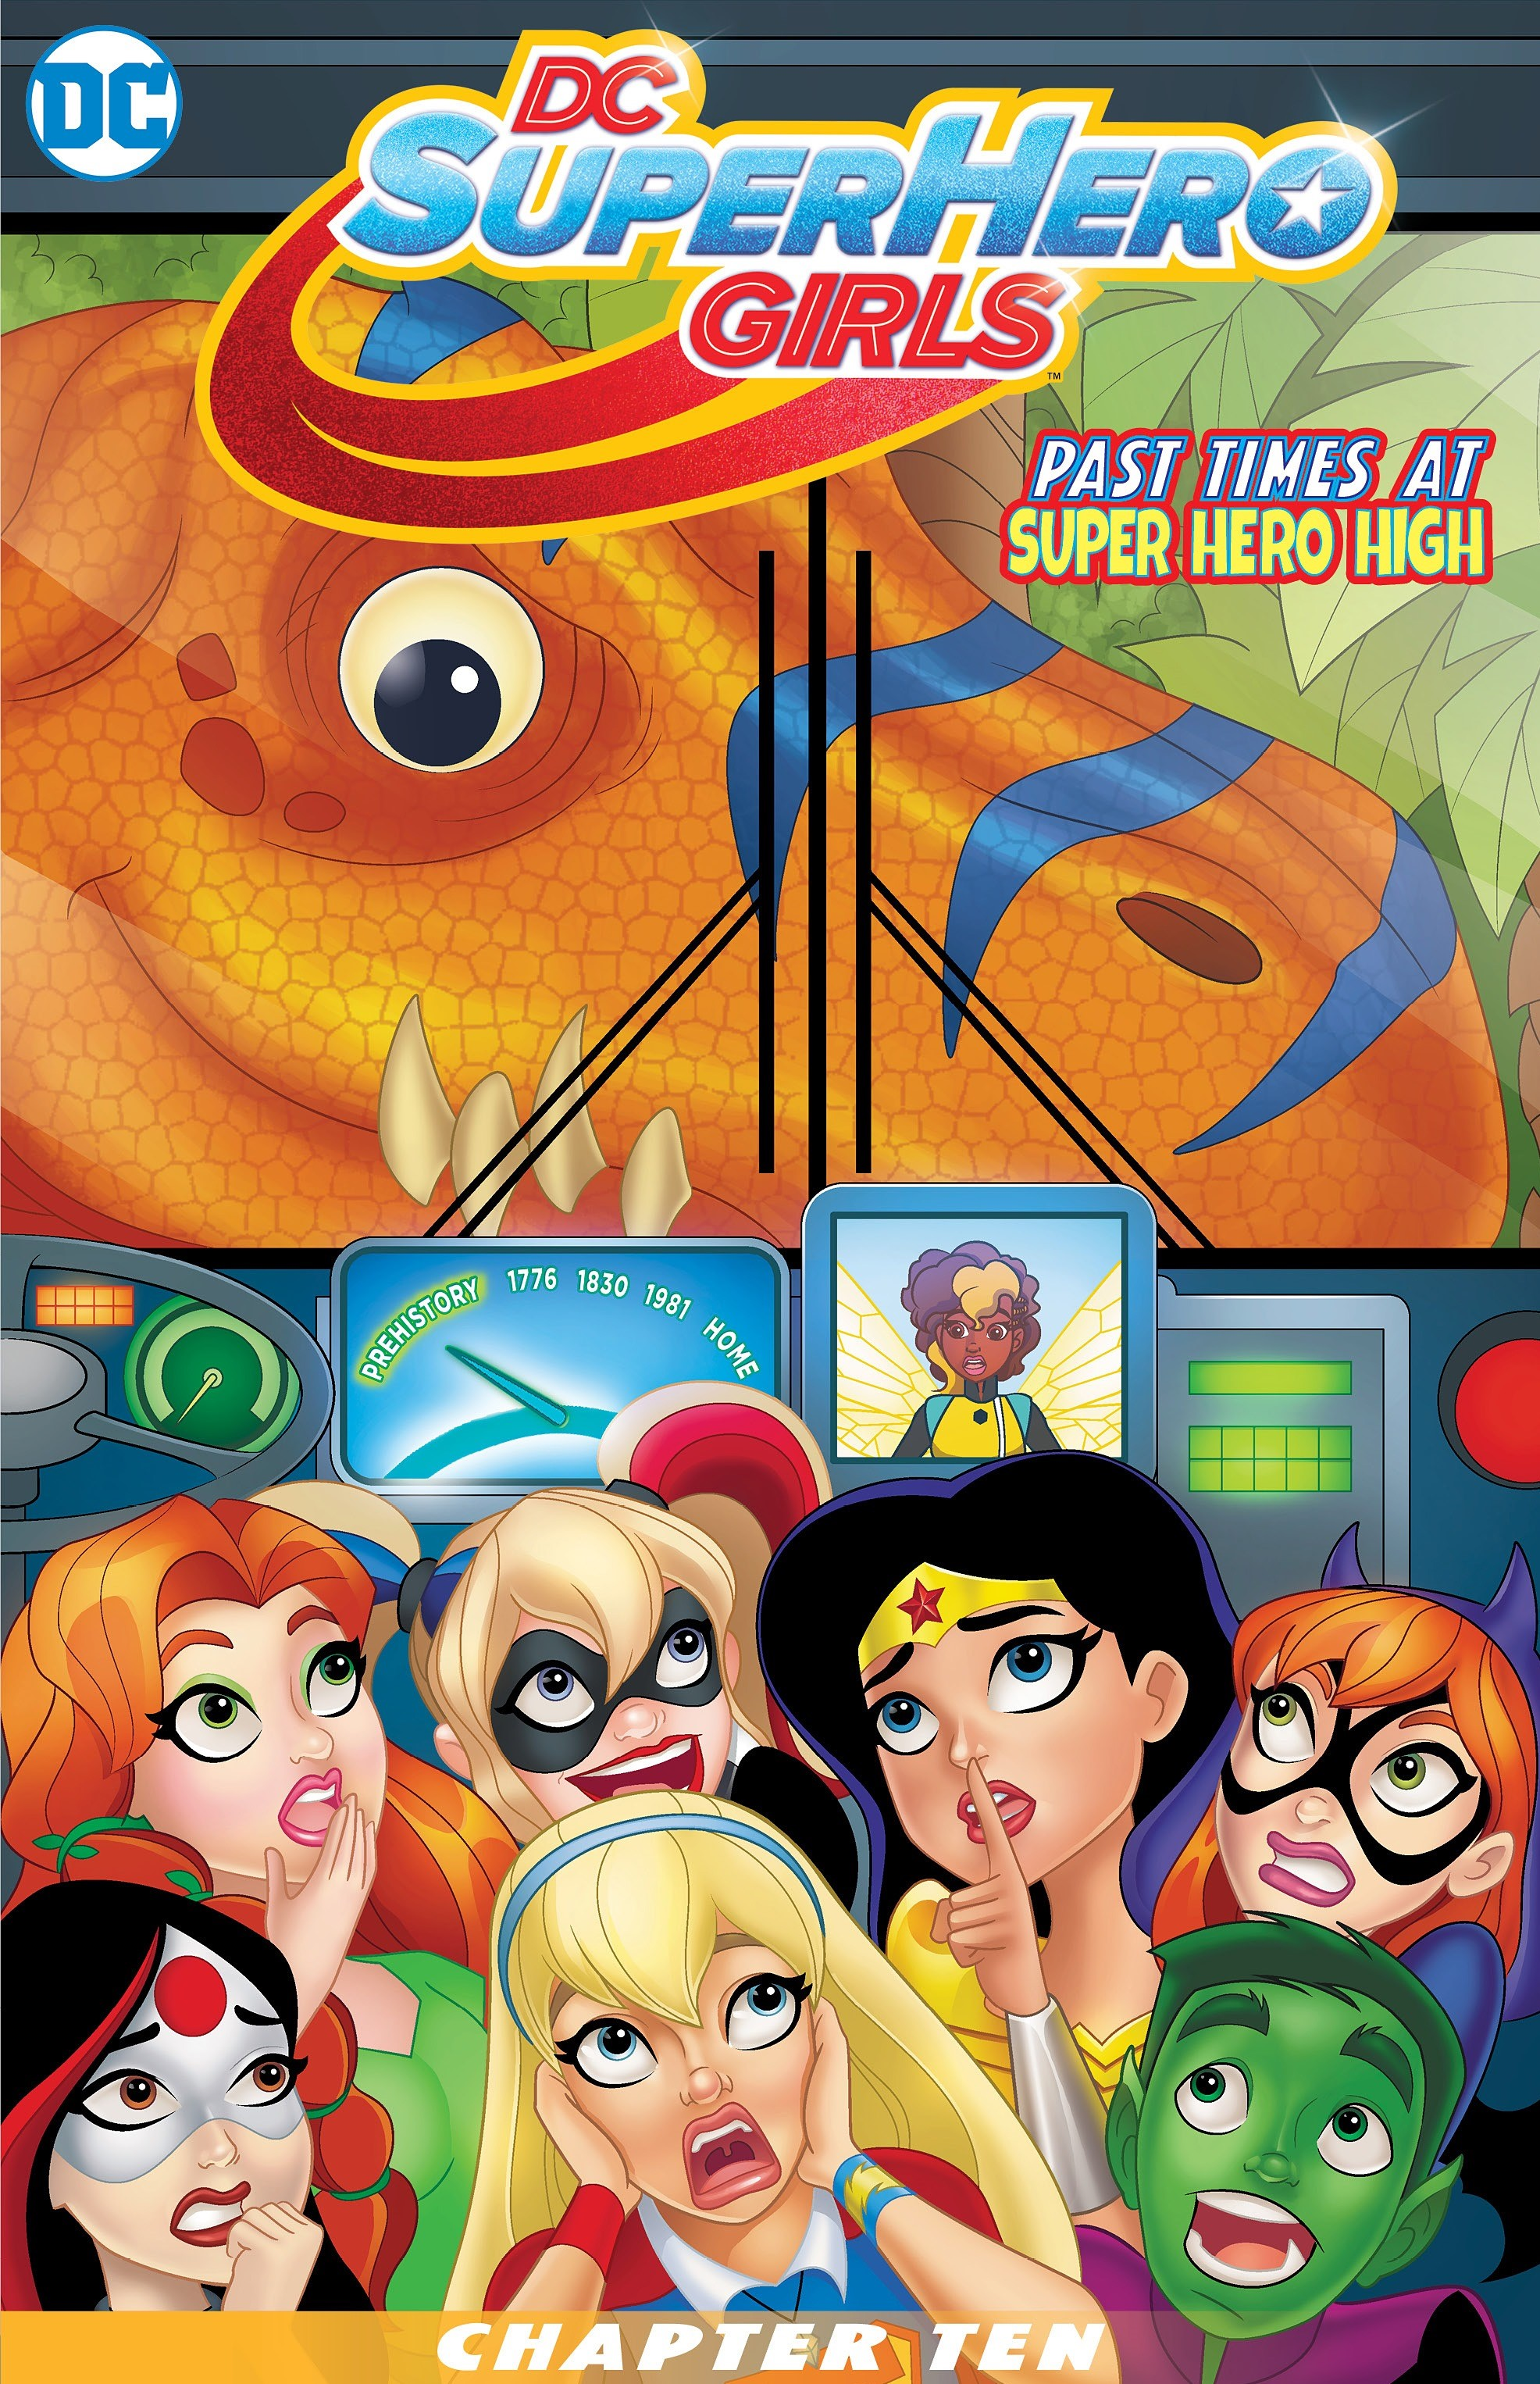 DC Super Hero Girls: Past Times at Super Hero High Vol 1 10 (Digital)